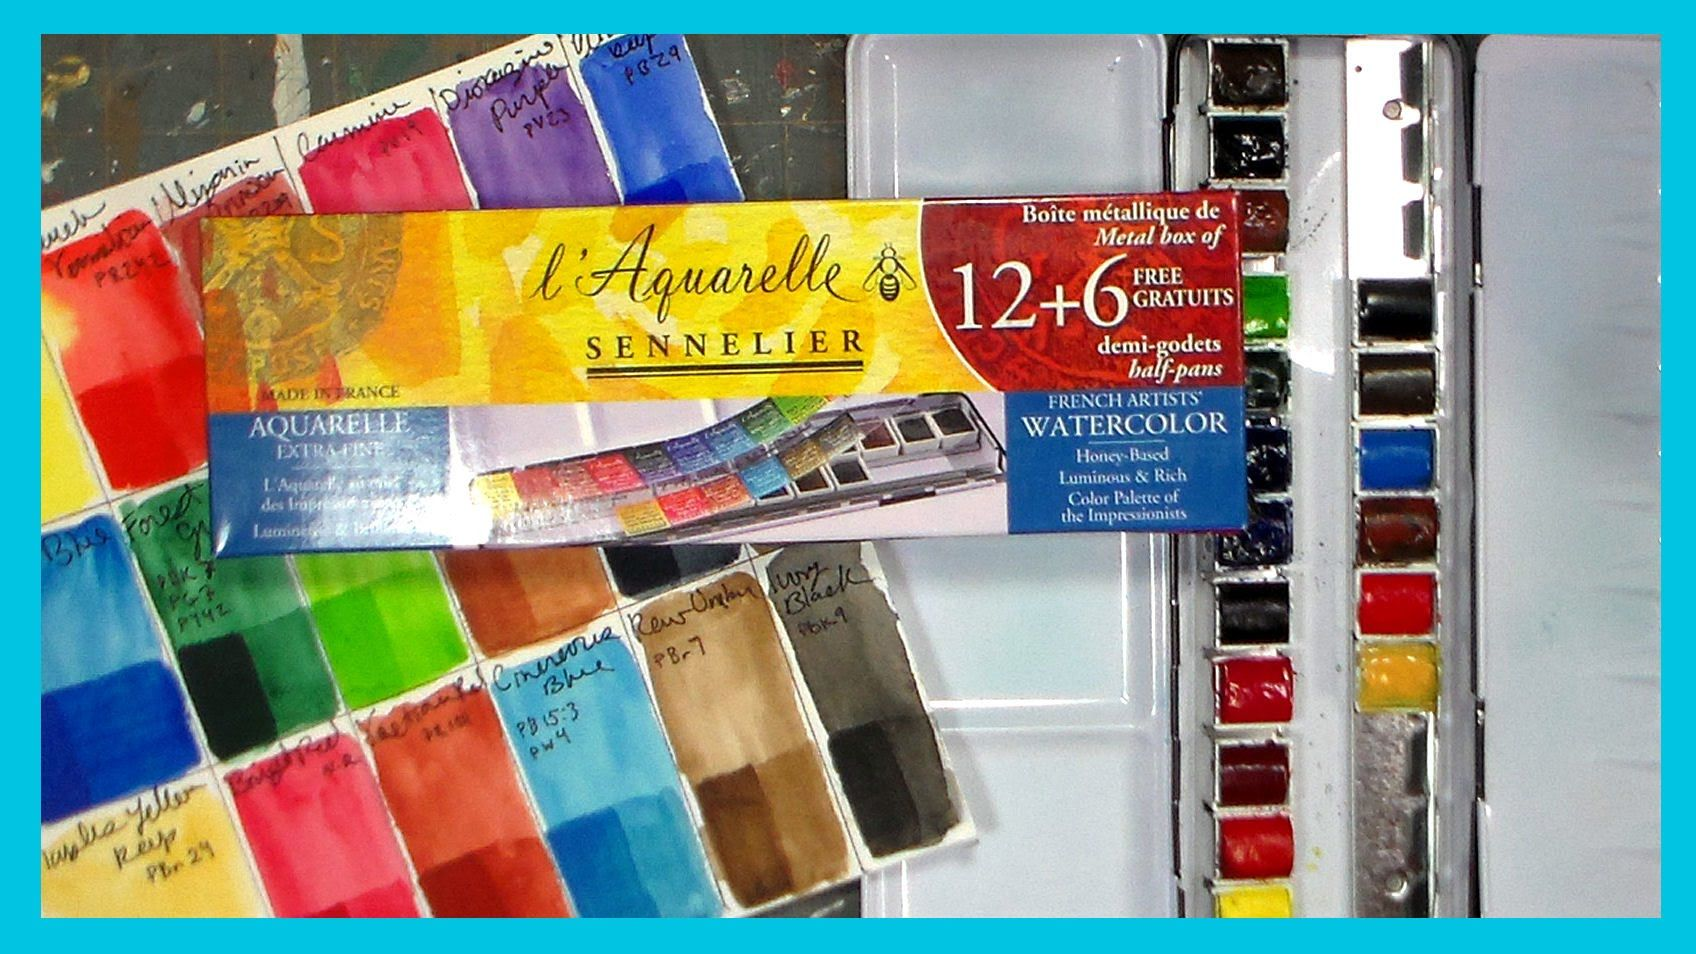 Sennelier L Aquarelle Watercolor Review Watercolor Branding The